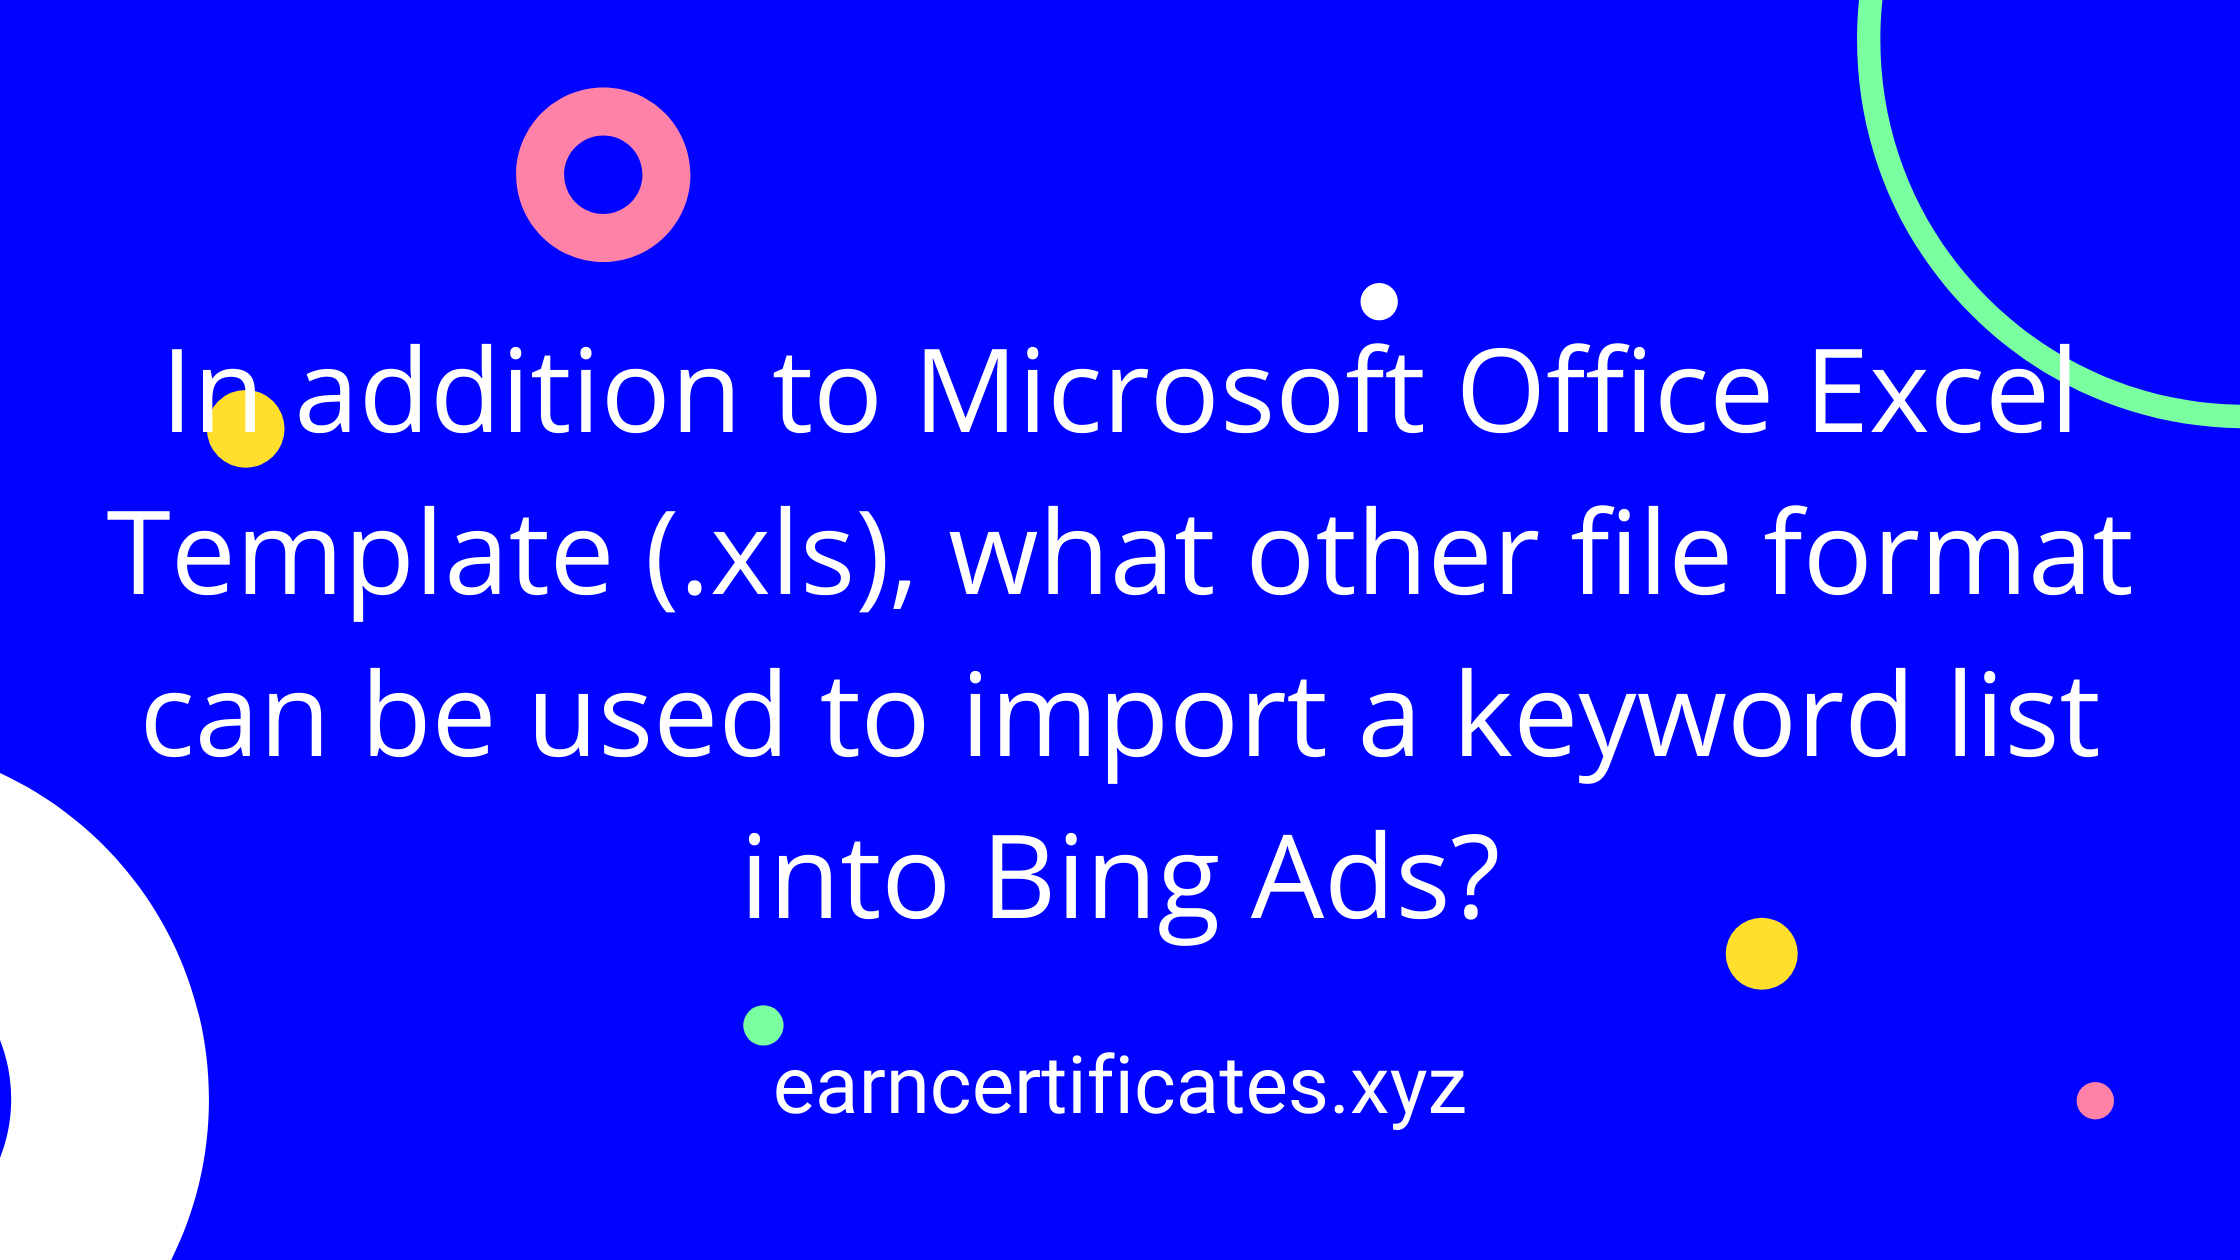 In addition to Microsoft Office Excel Template (.xls), what other file format can be used to import a keyword list into Bing Ads?